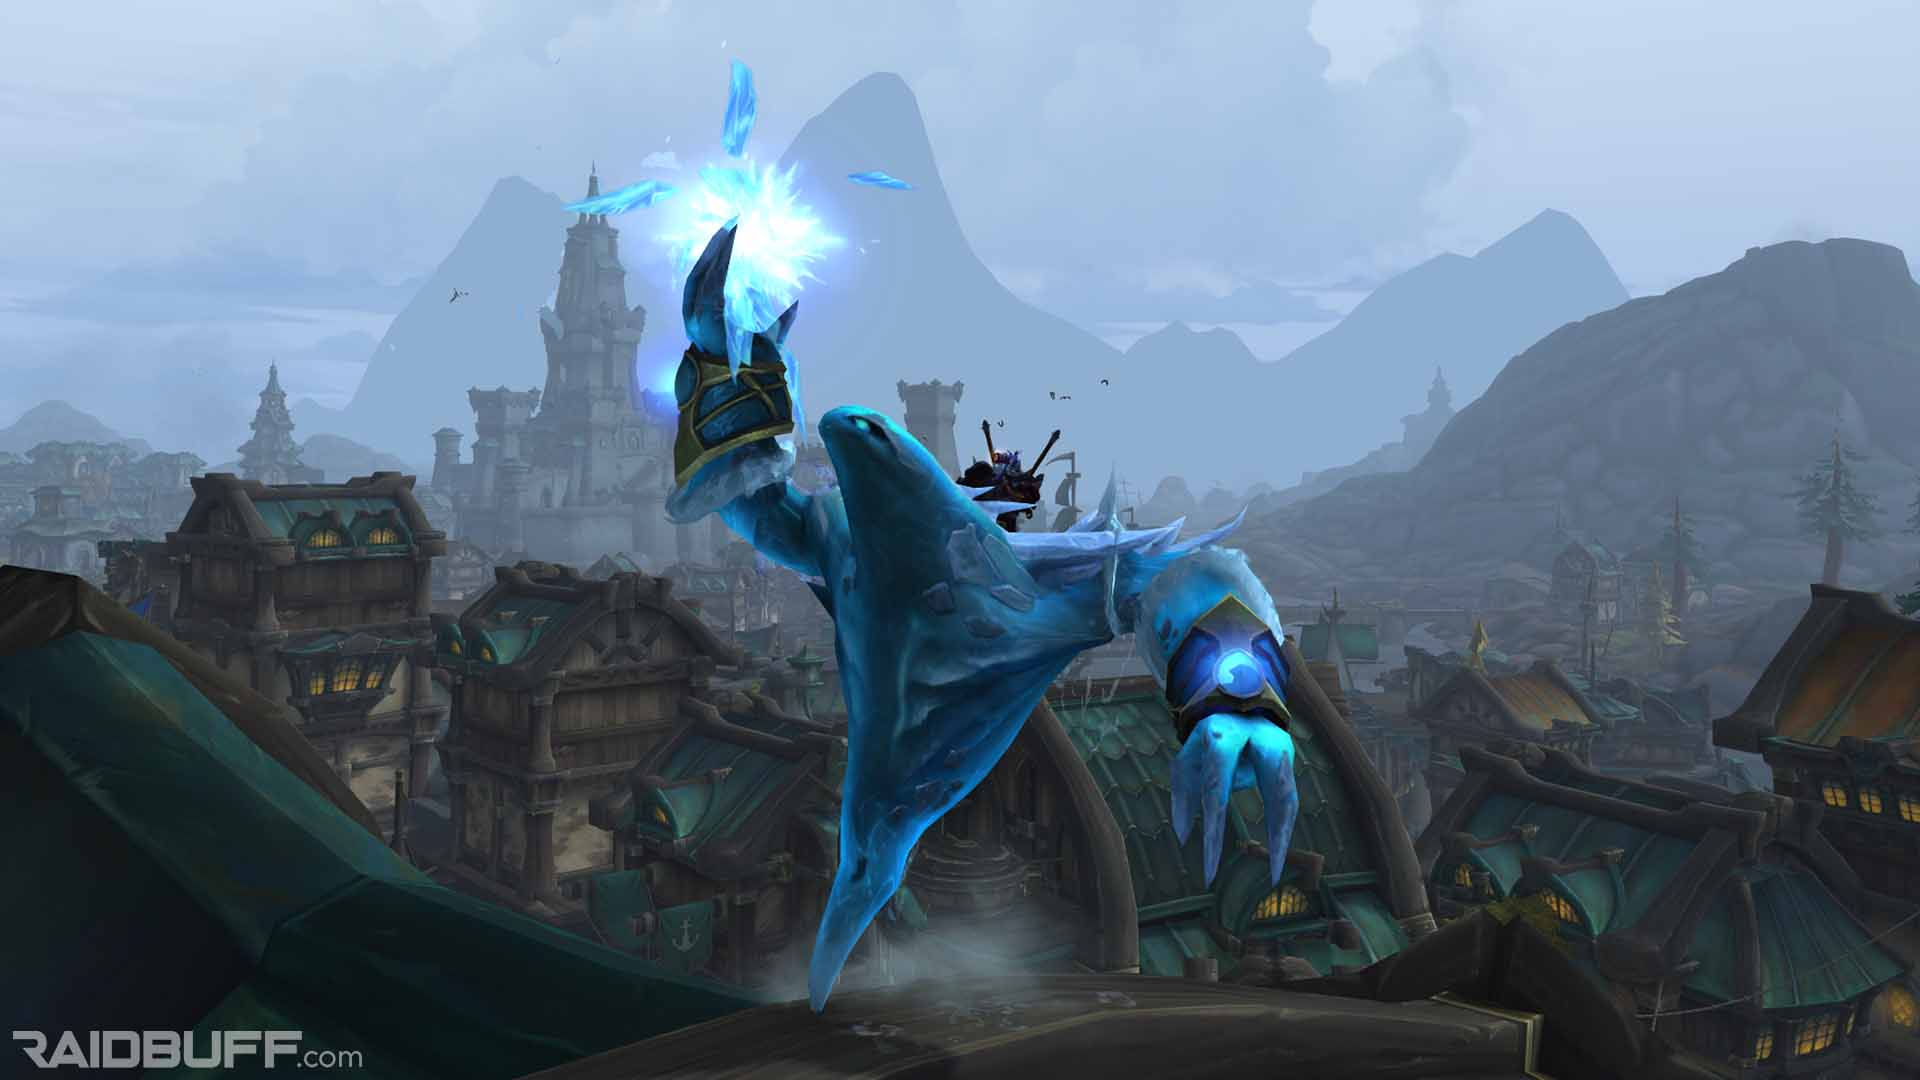 Glacial Tidestorm Mount, which drops off of Jaina in Mythic Battle for Dazzar'alor